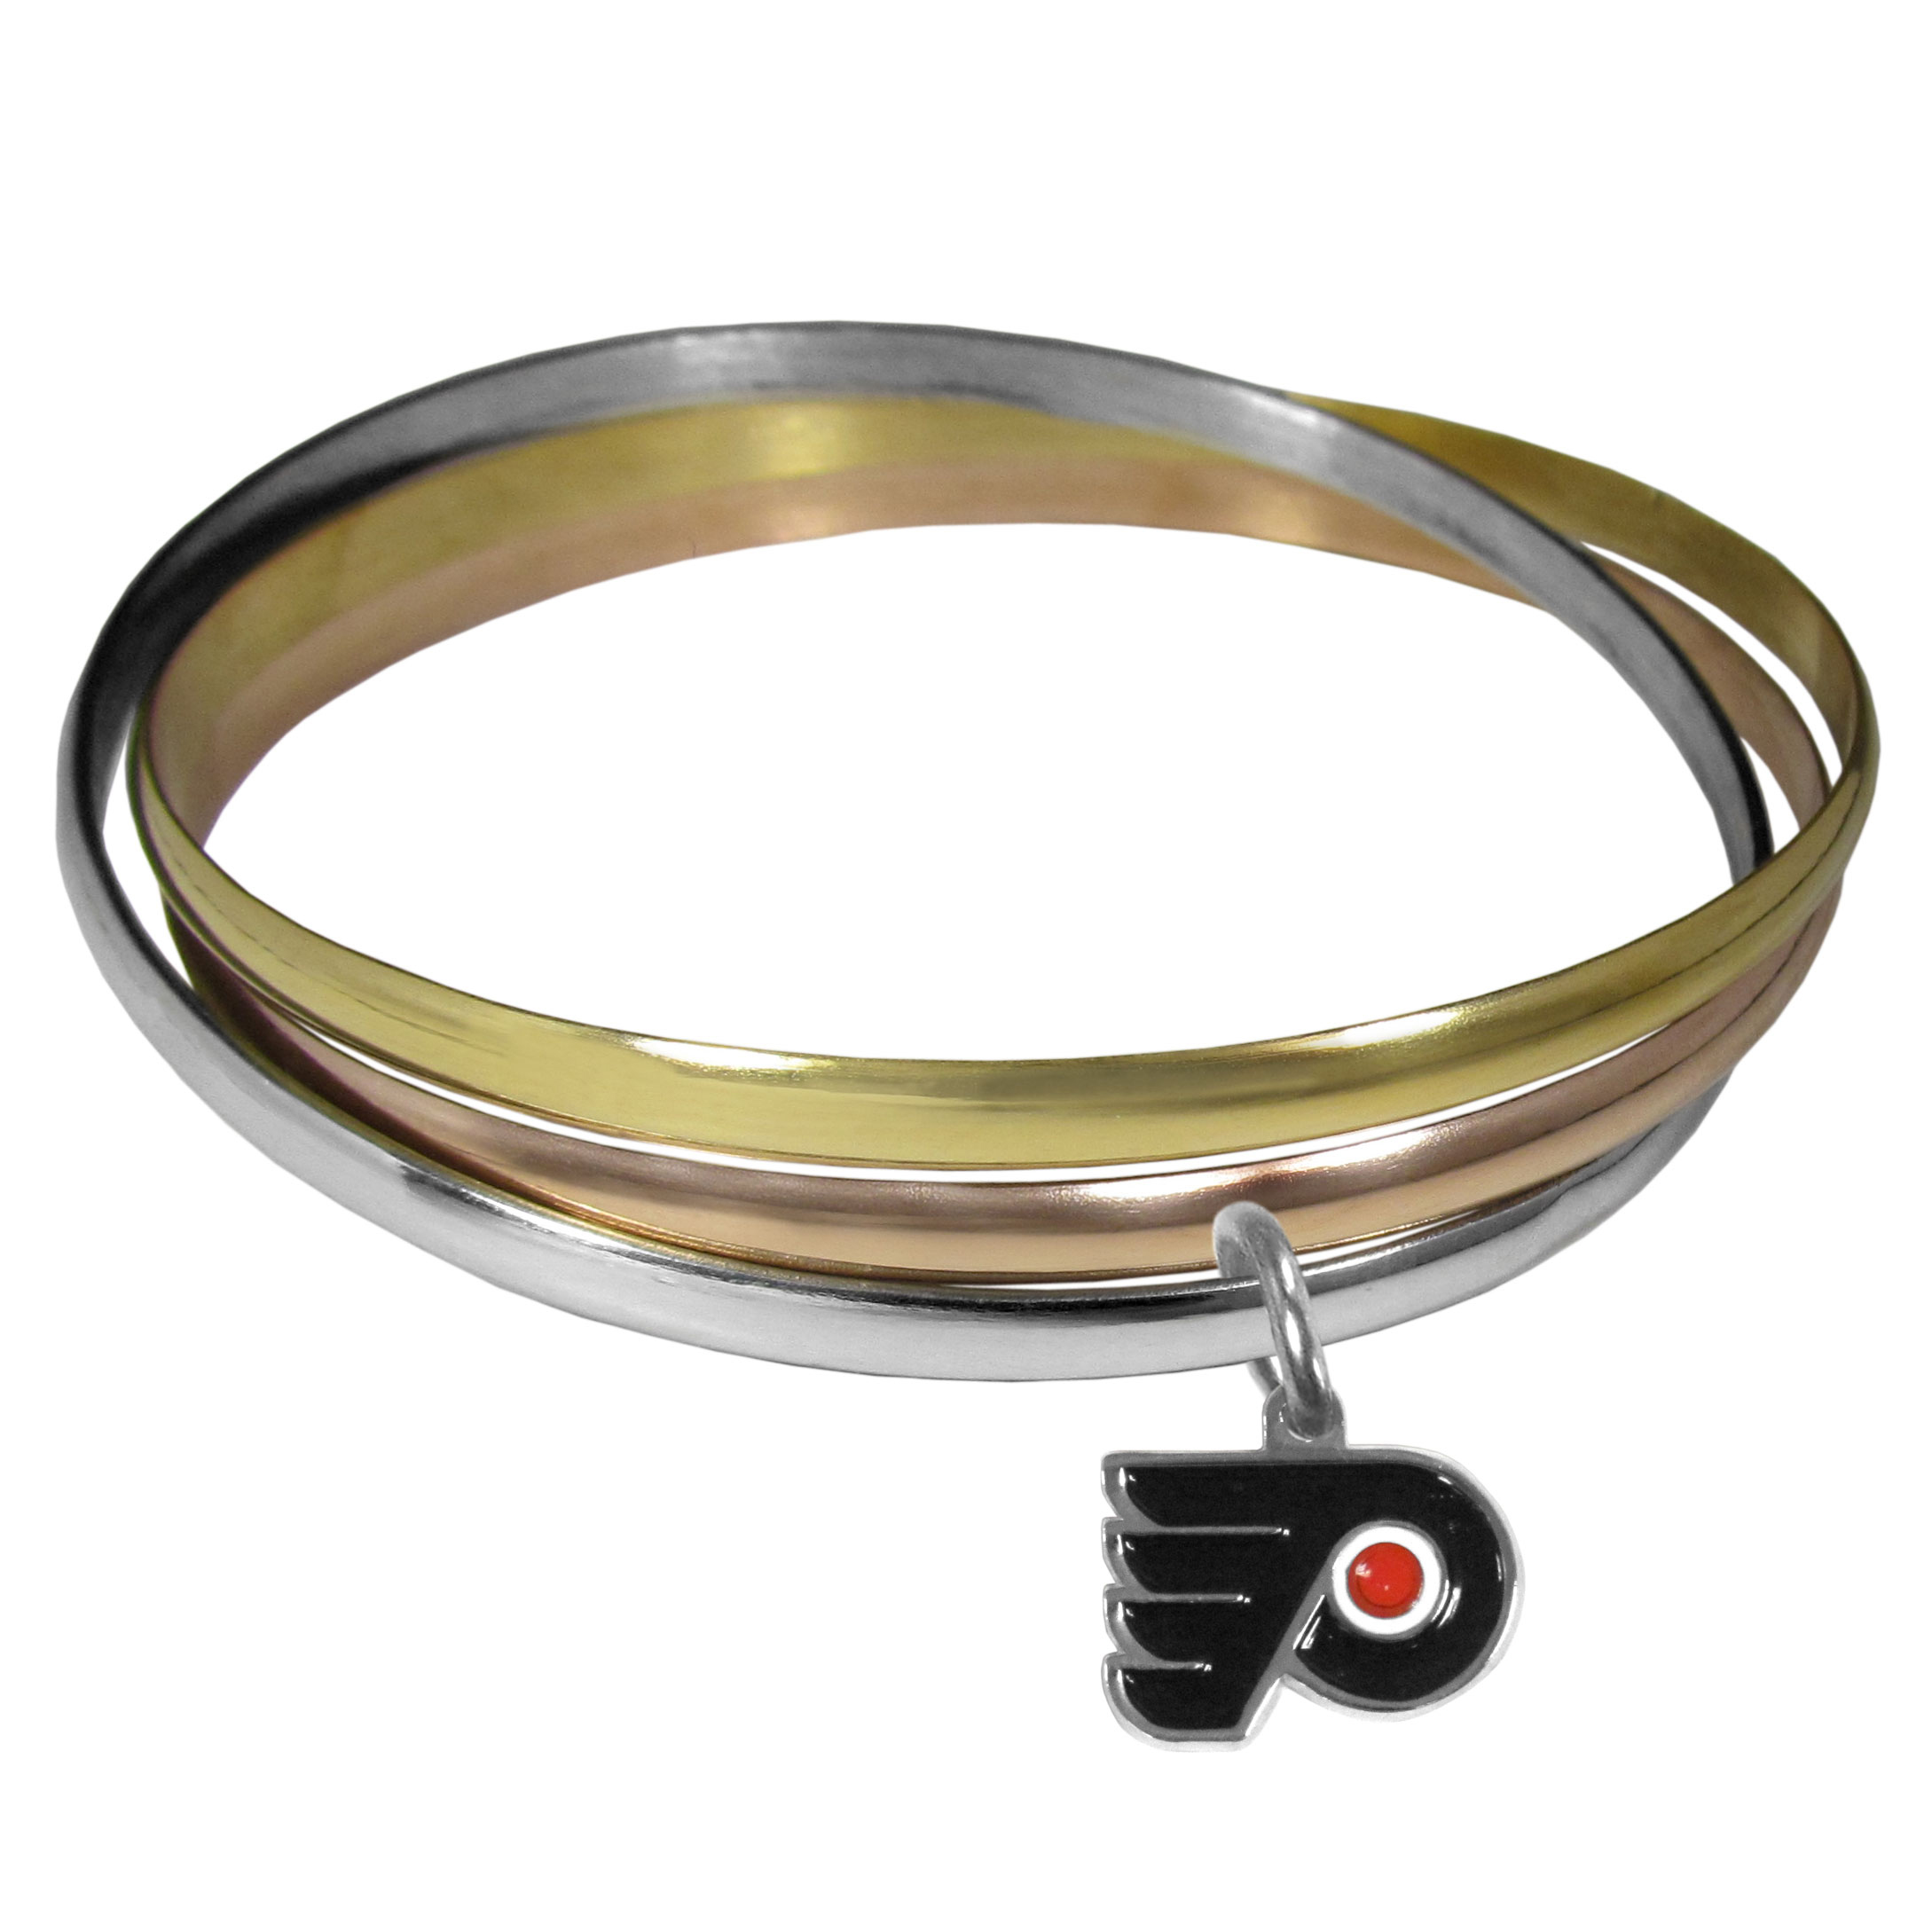 Philadelphia Flyers® Tri-color Bangle Bracelet - These beautiful bangles come in a interlocking style and feature a fully cast Philadelphia Flyers® charm with enameled team colors. The bracelet has a silver toned bangle, gold tone bangle and brass toned bangle.